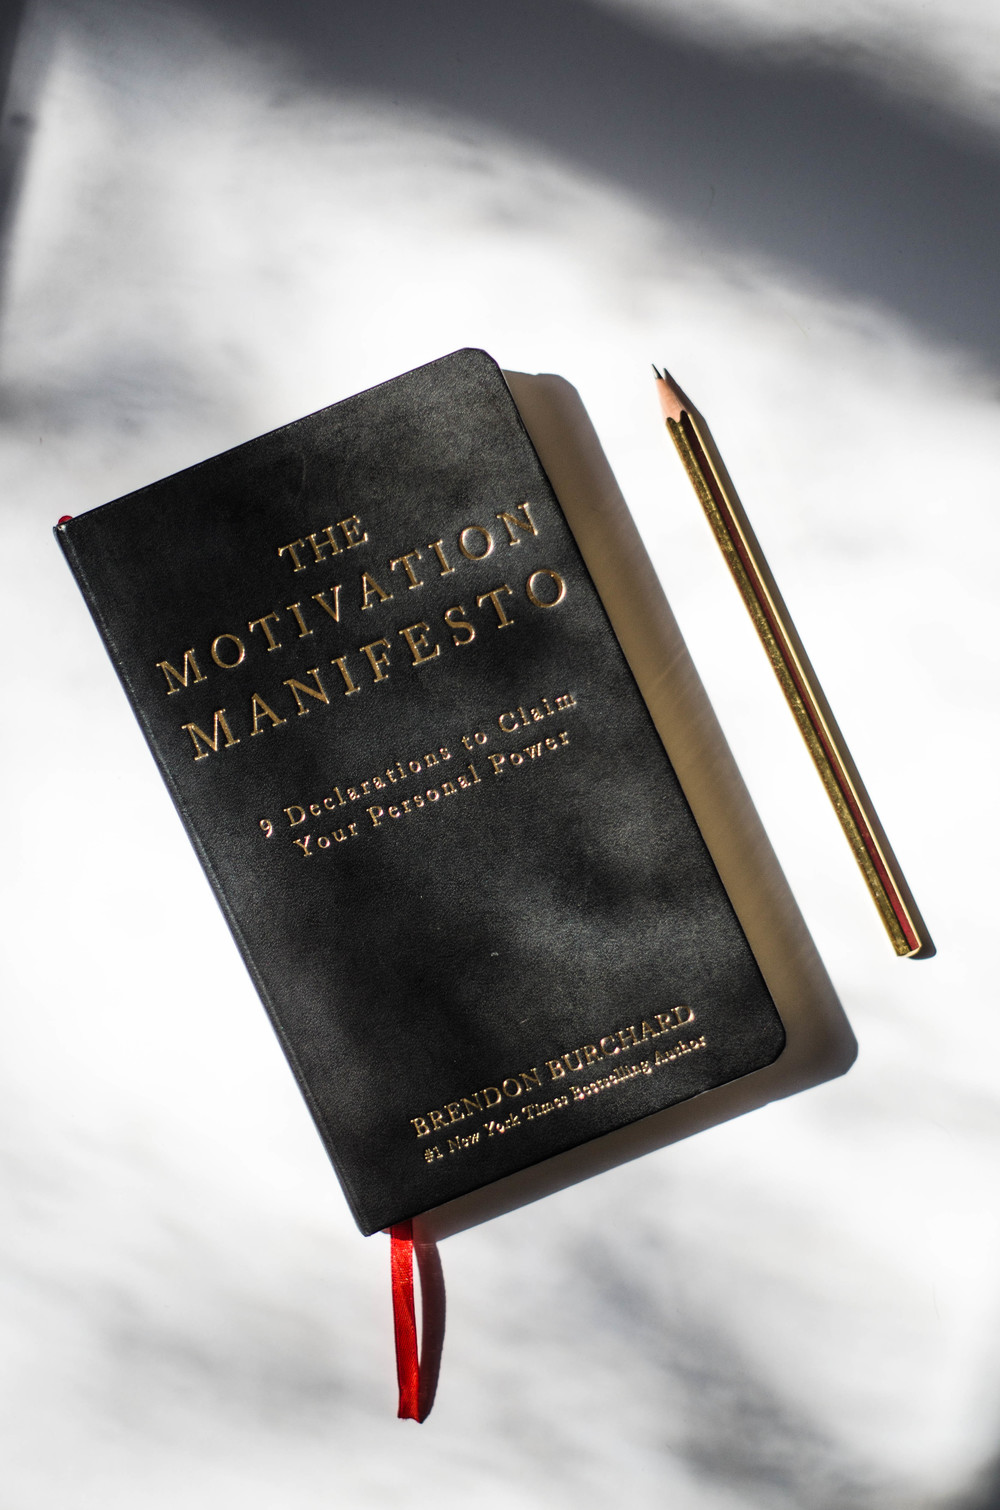 ROSE & IVY JOurnal A Book That Might Change Your Life The Motivation Manifesto